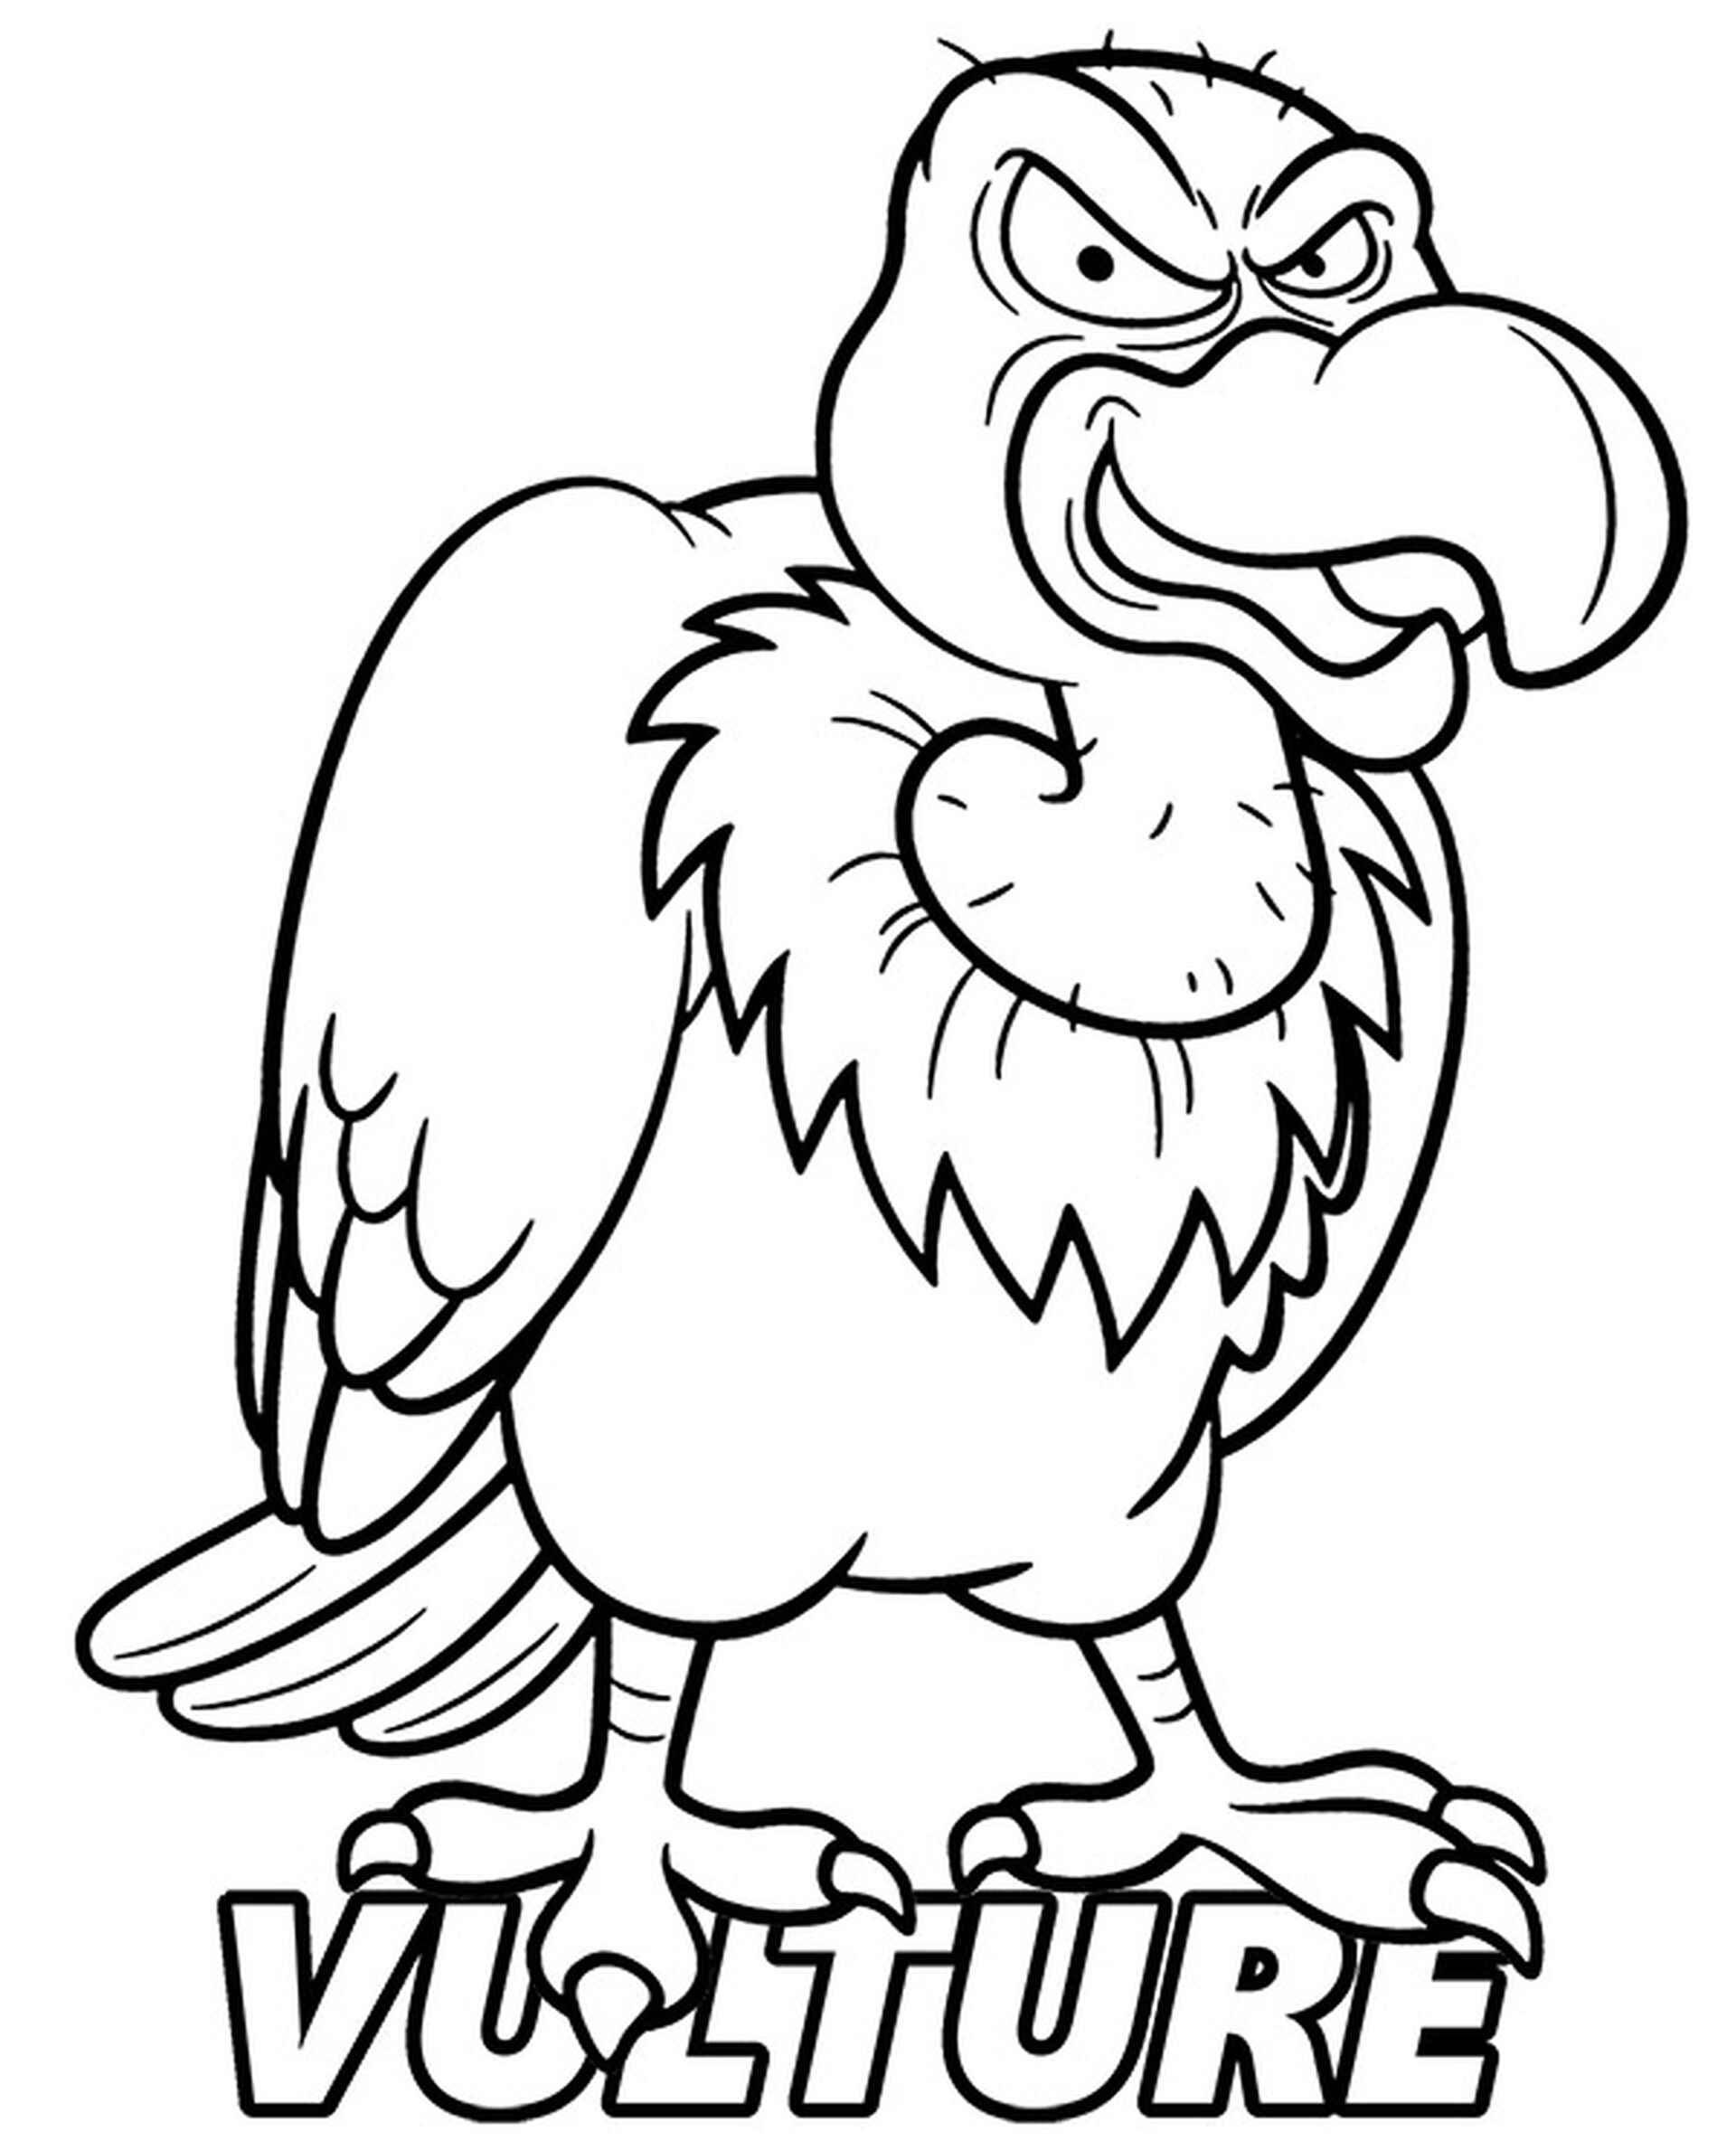 Angry Vulture Coloring Page